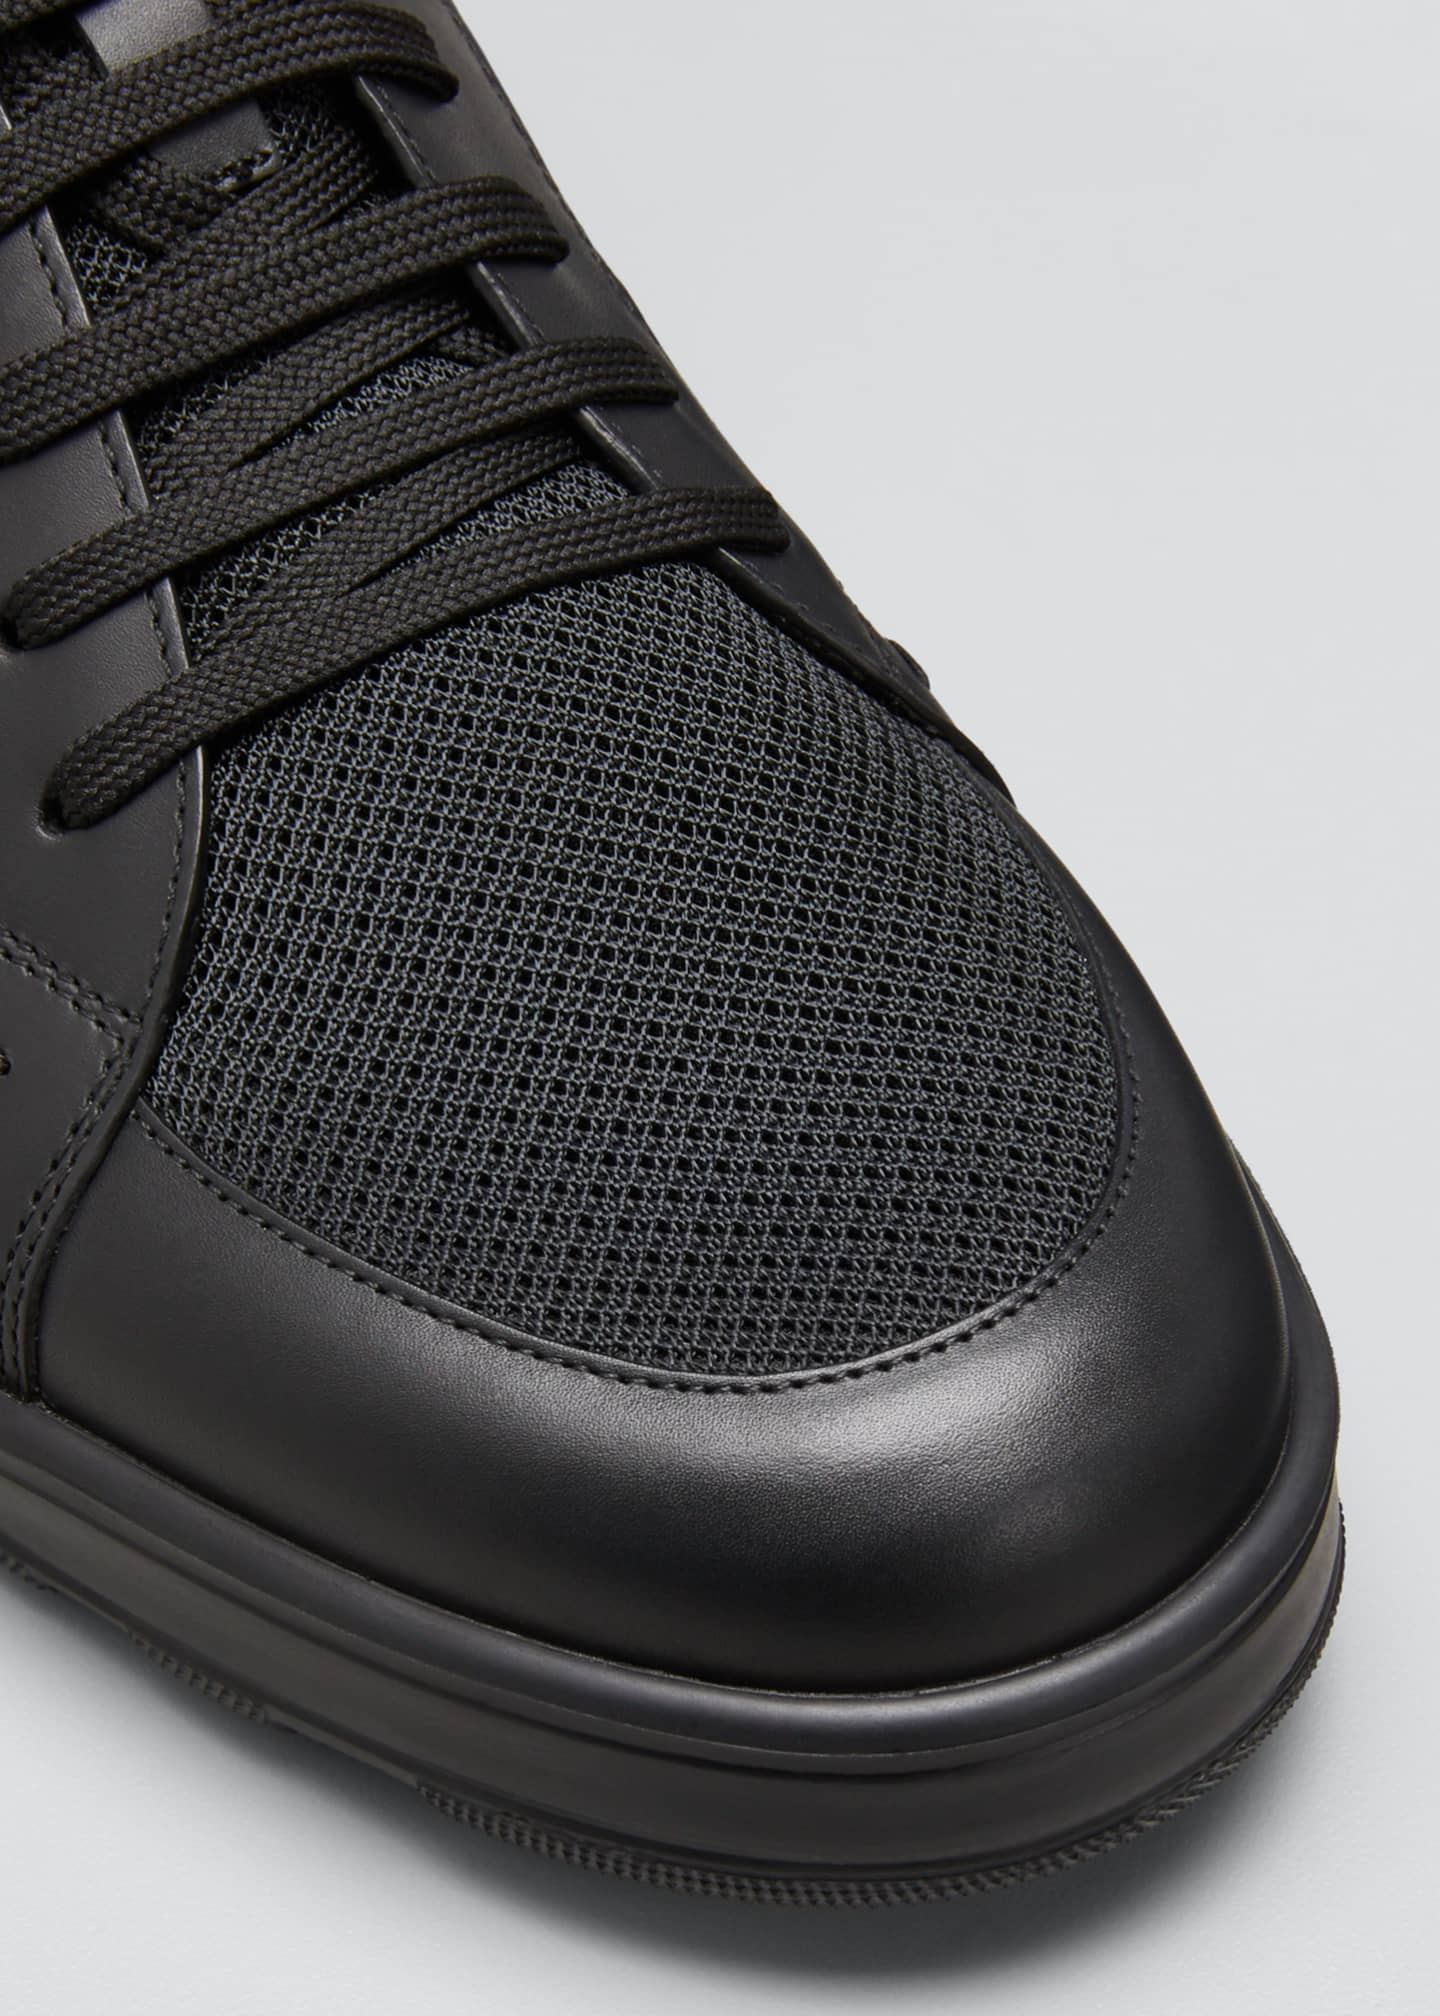 Image 5 of 5: Men's High-Top FF Leather Platform Sneakers